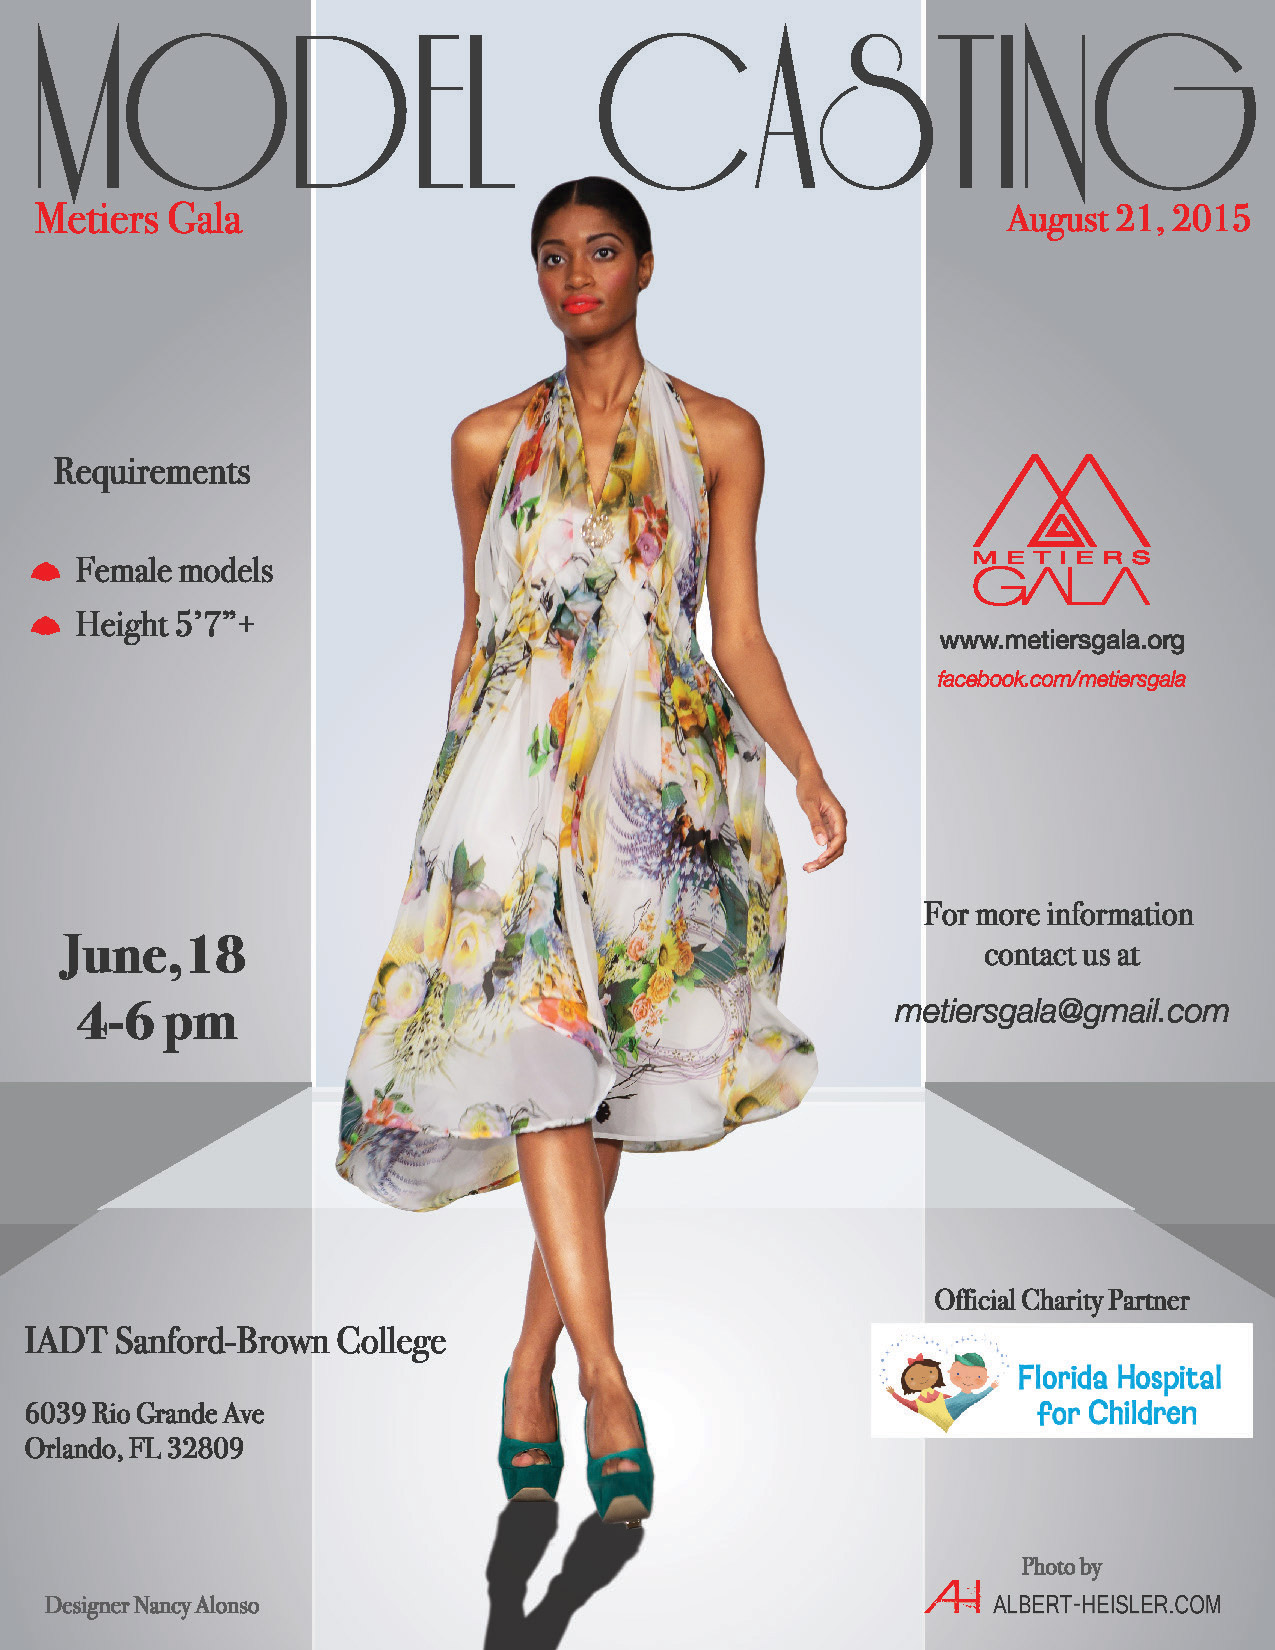 Casting Runway Models In The Orlando Area For Charity Fashion Show Auditions Free